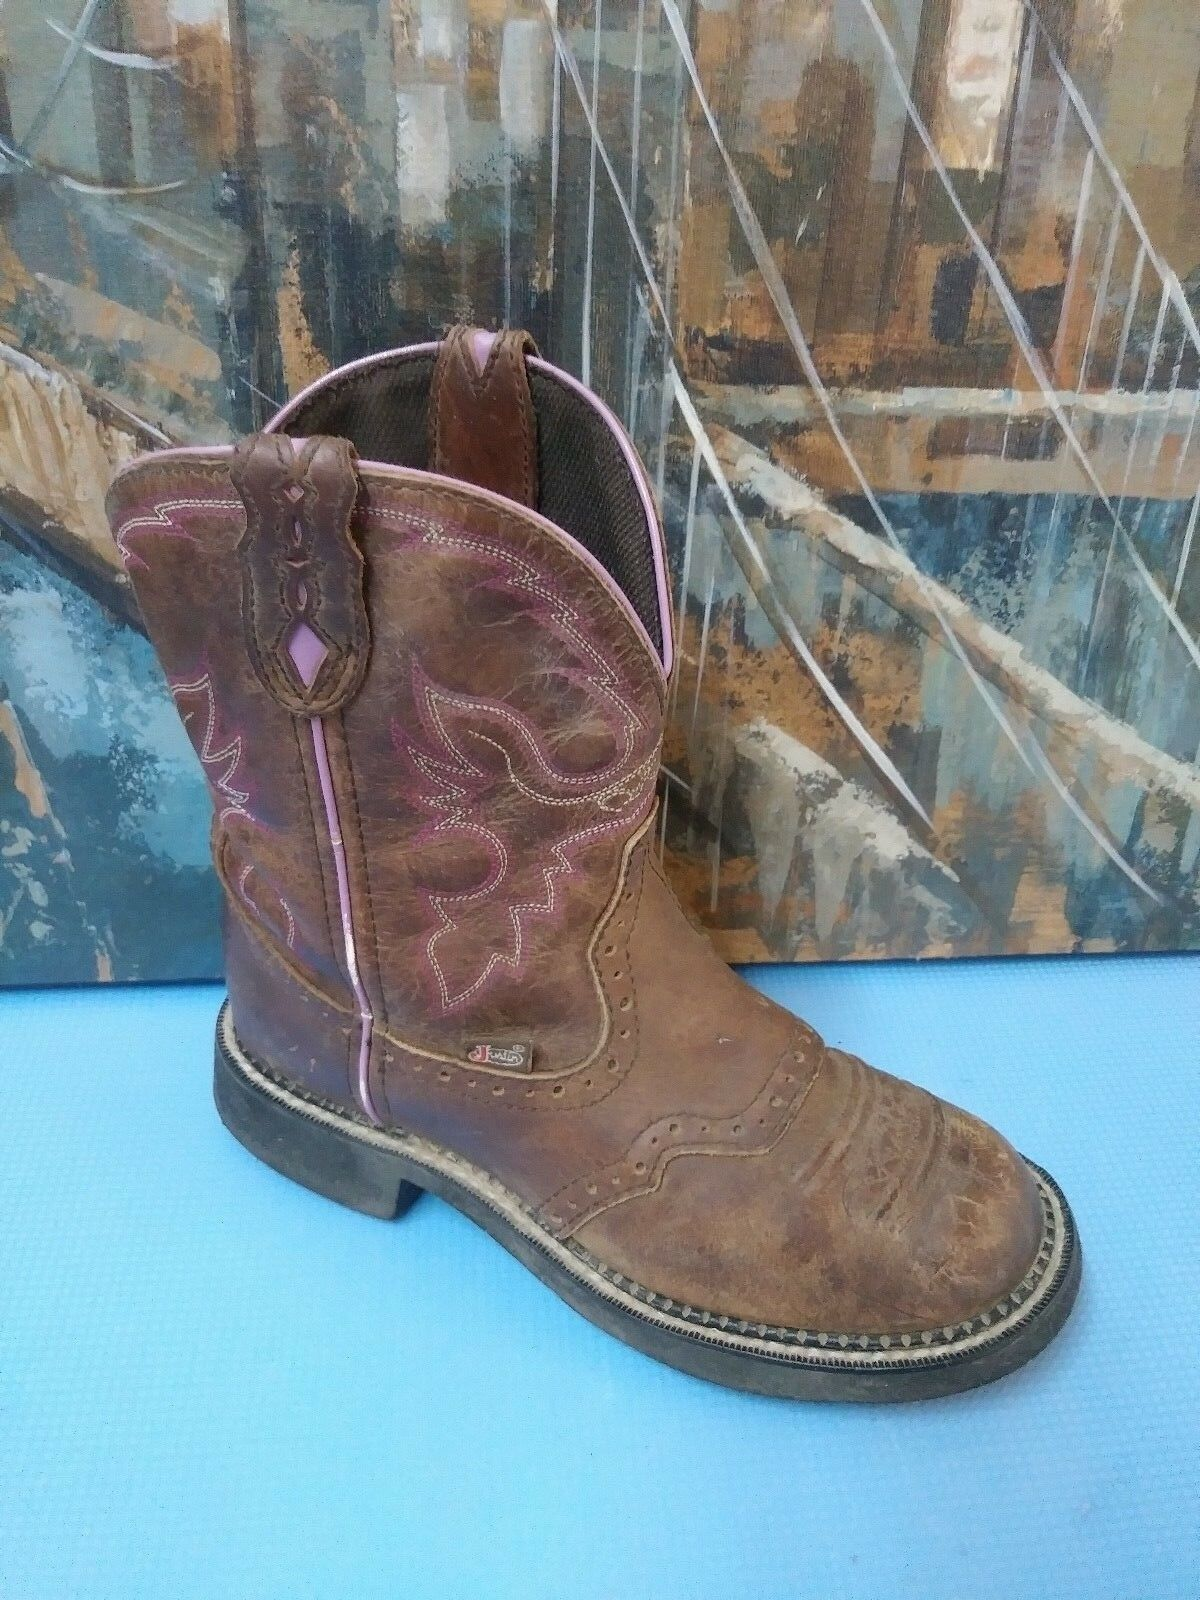 Women's brown leather Justin boots, size 6.5